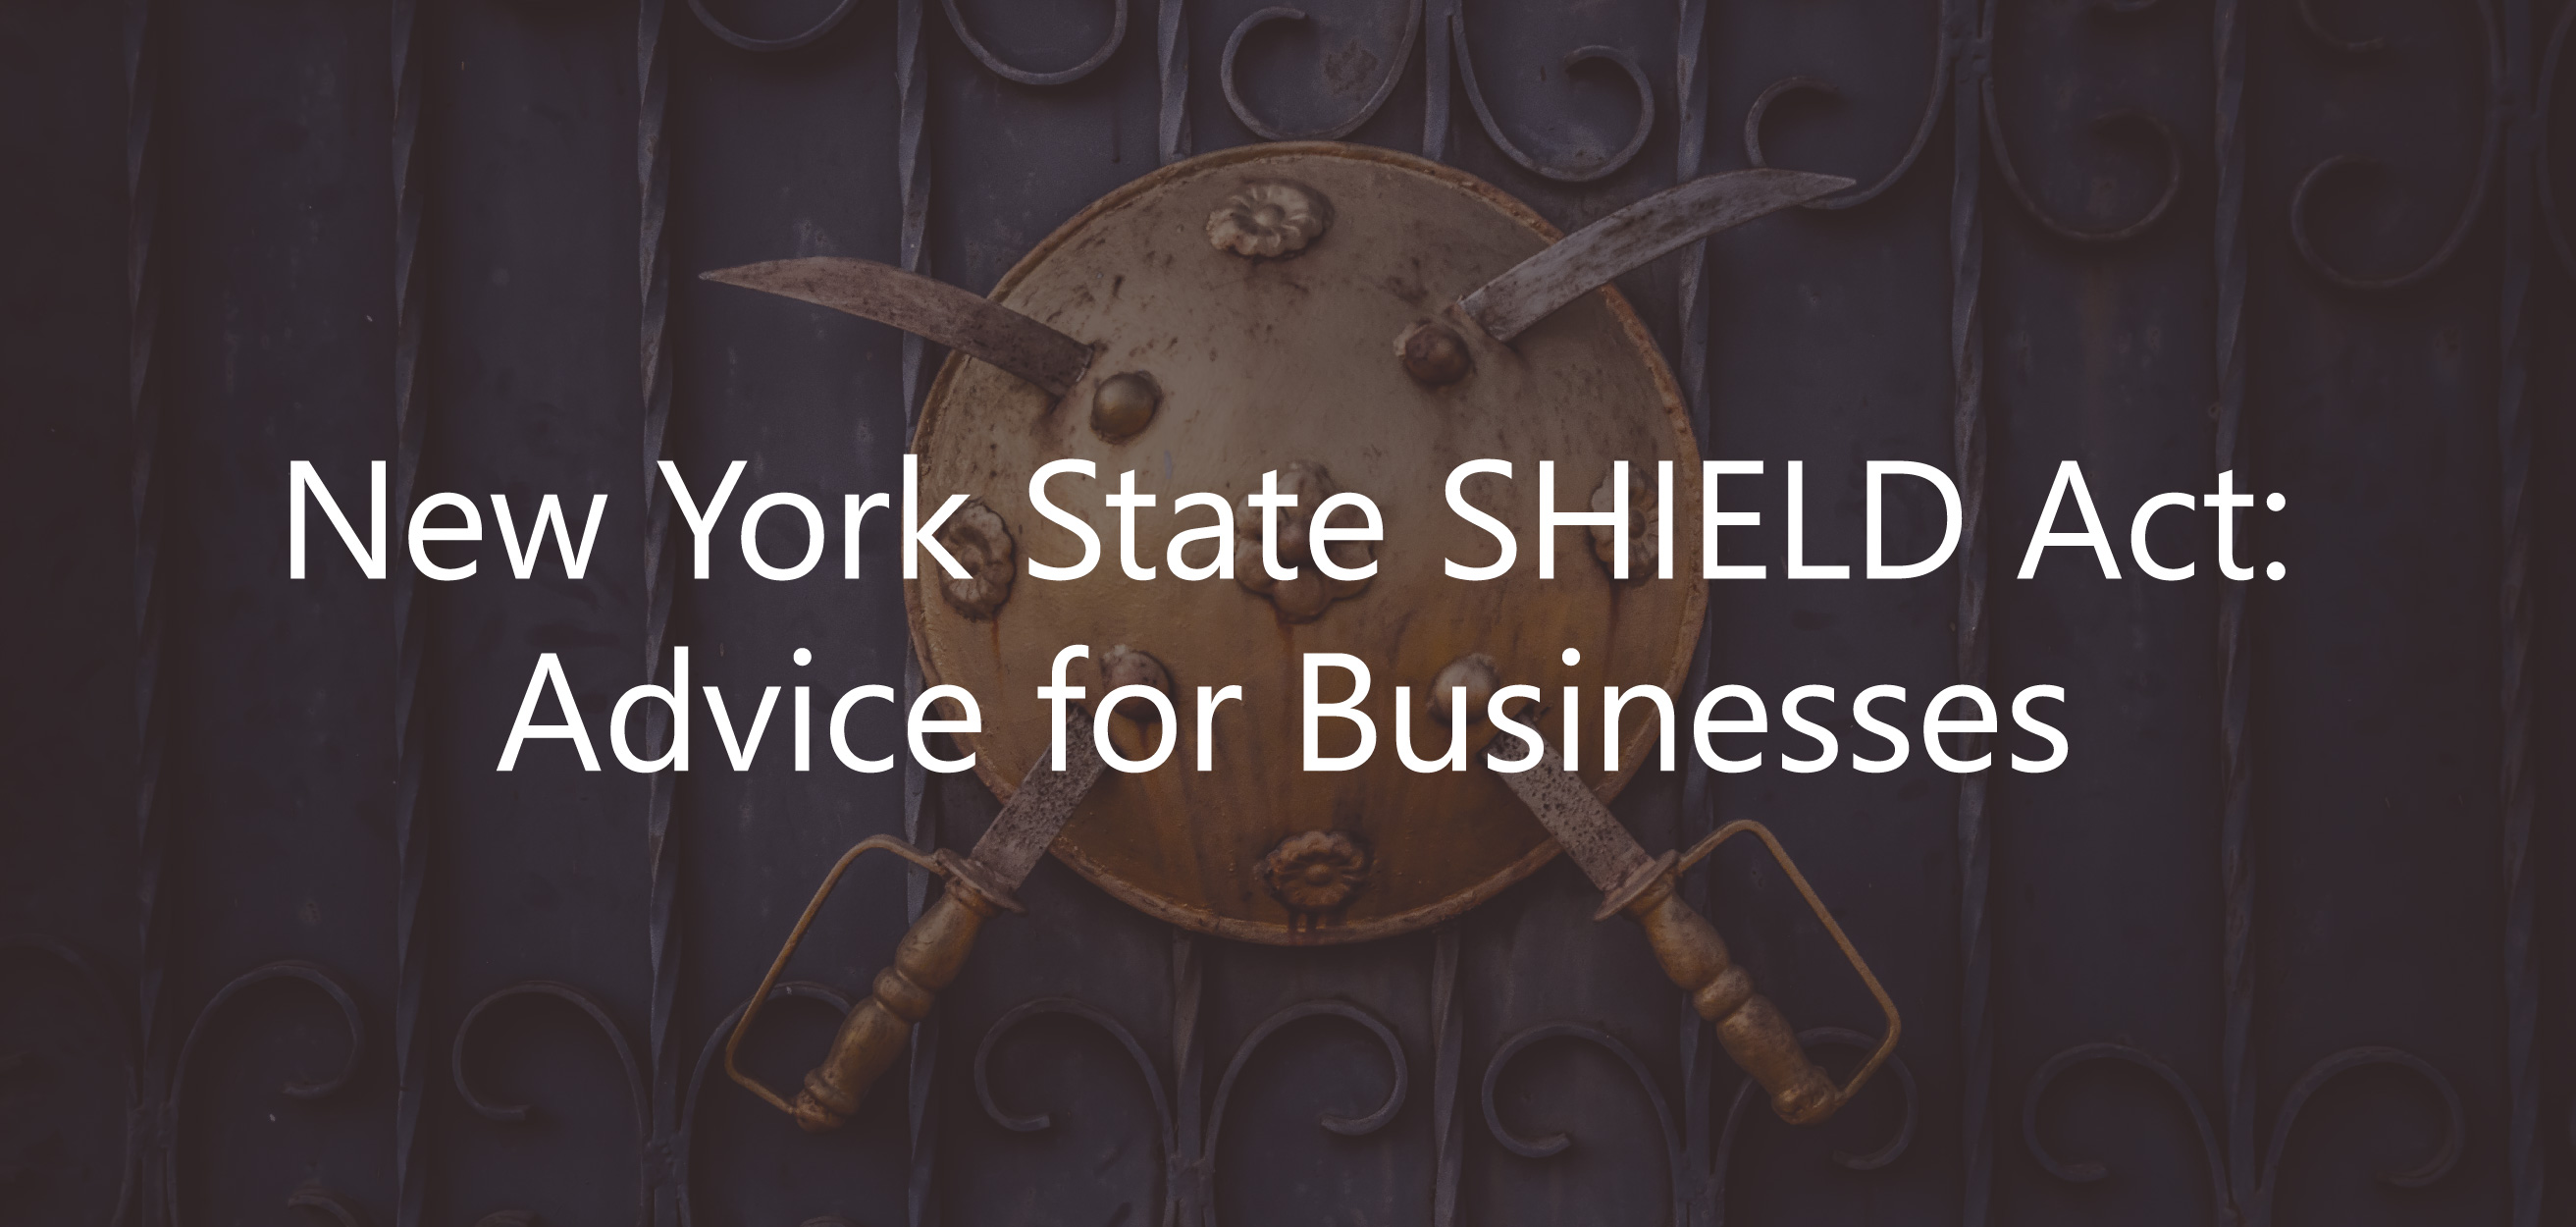 new work state shield act what businesses should do